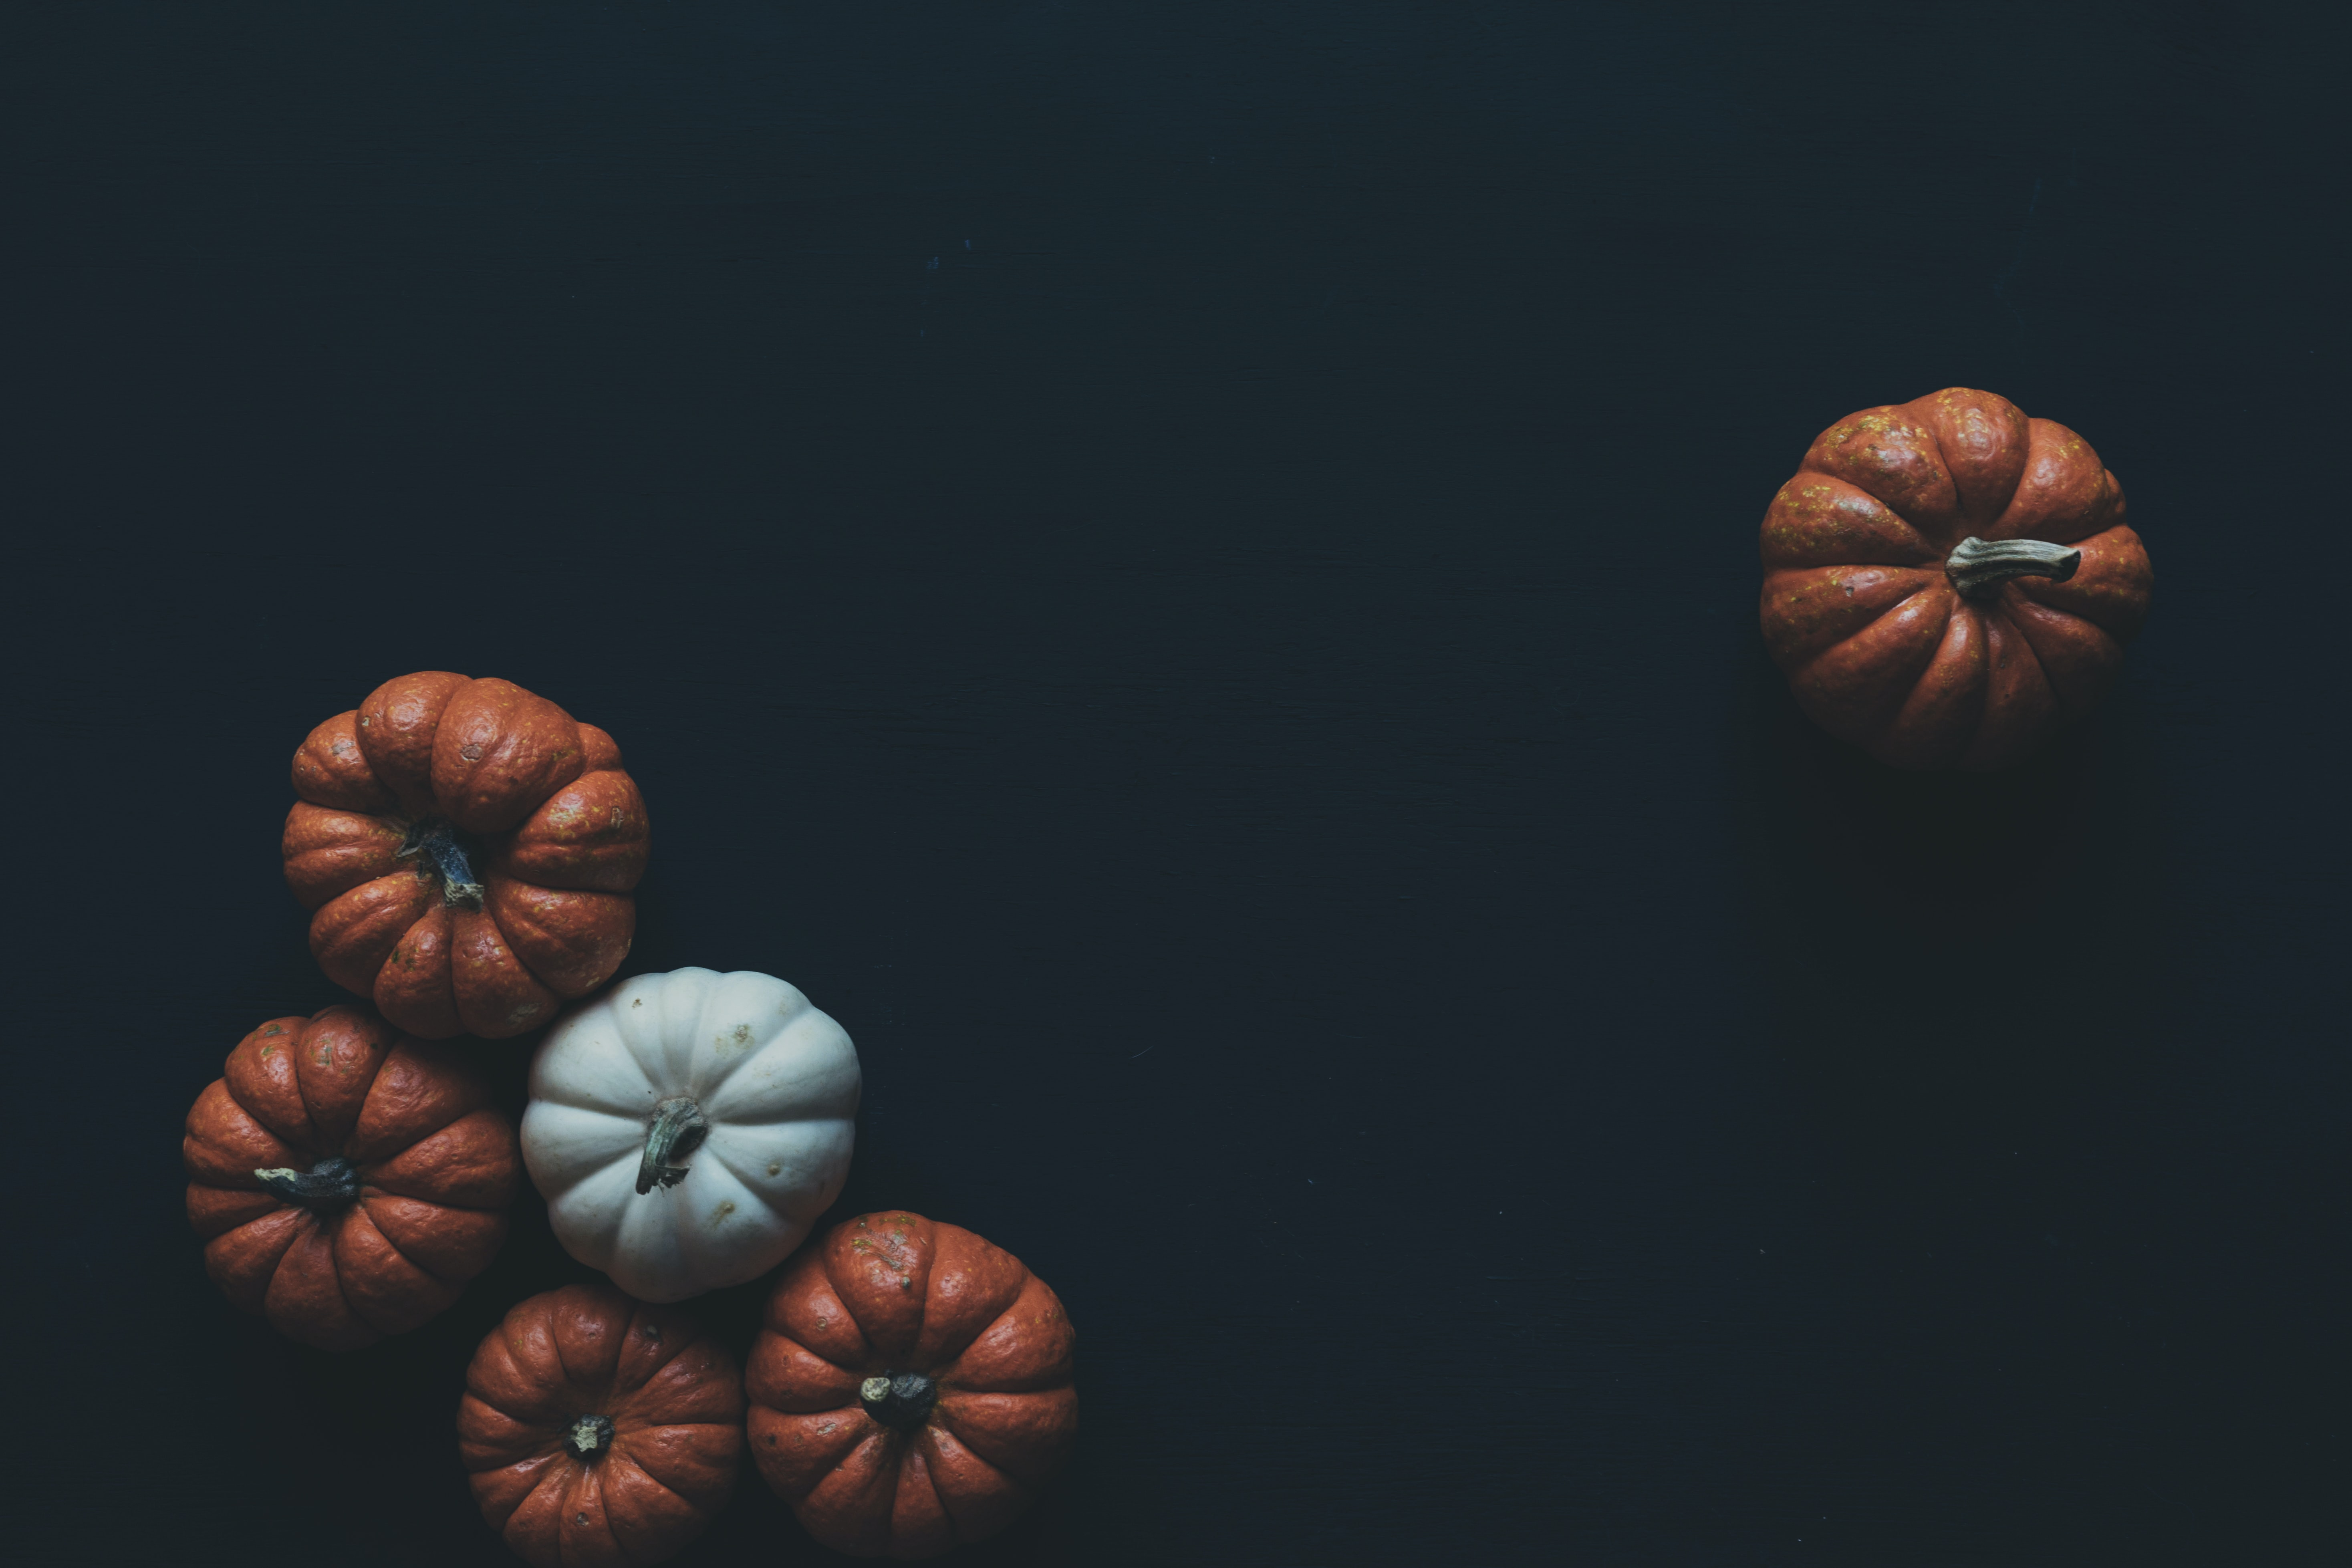 The tops of small, decorative orange and white pumpkins arranged on a black surface